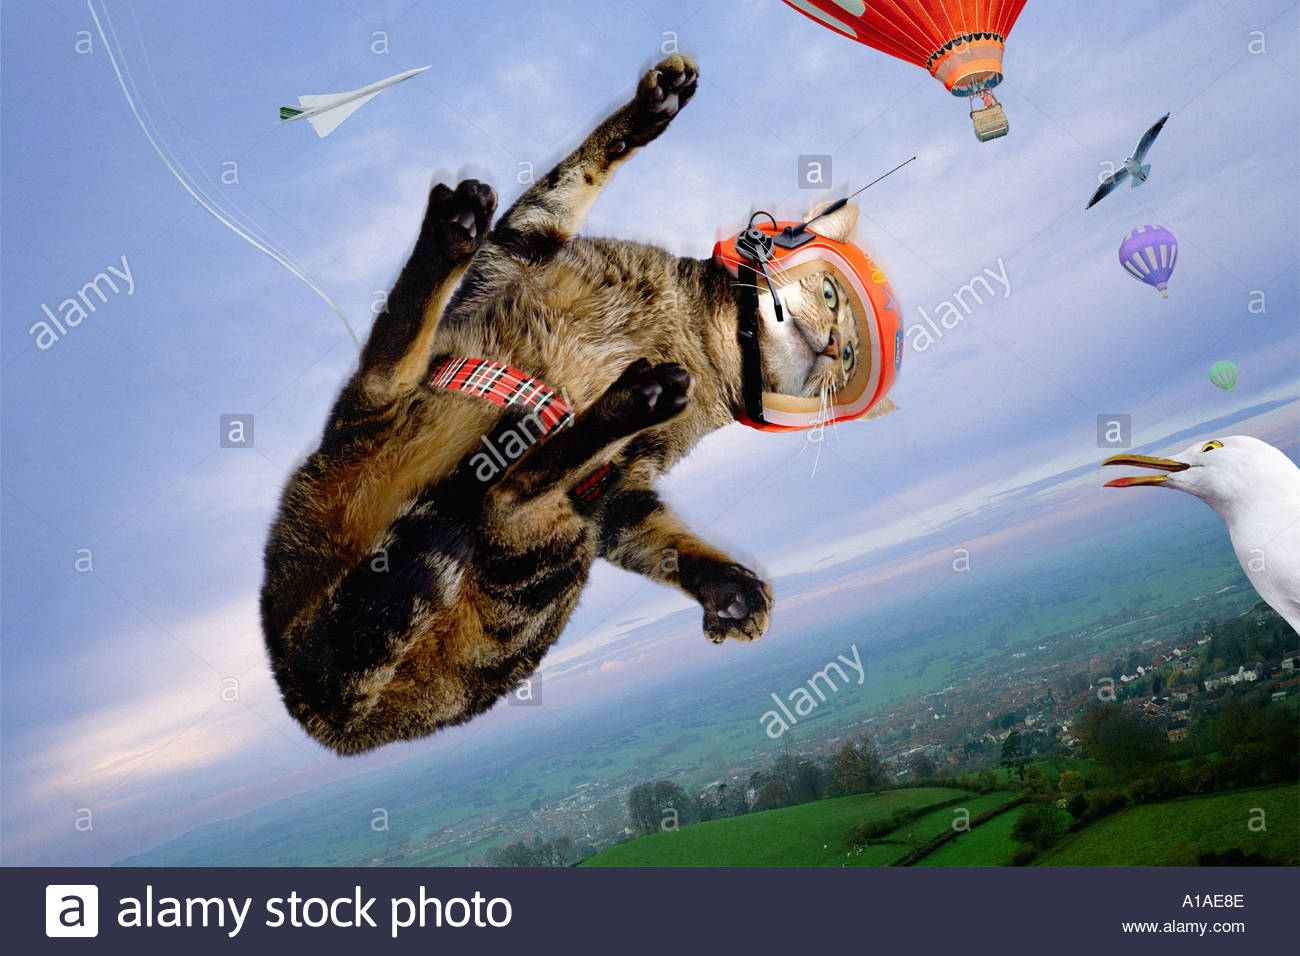 Cat on a bungee jump - Stock Image